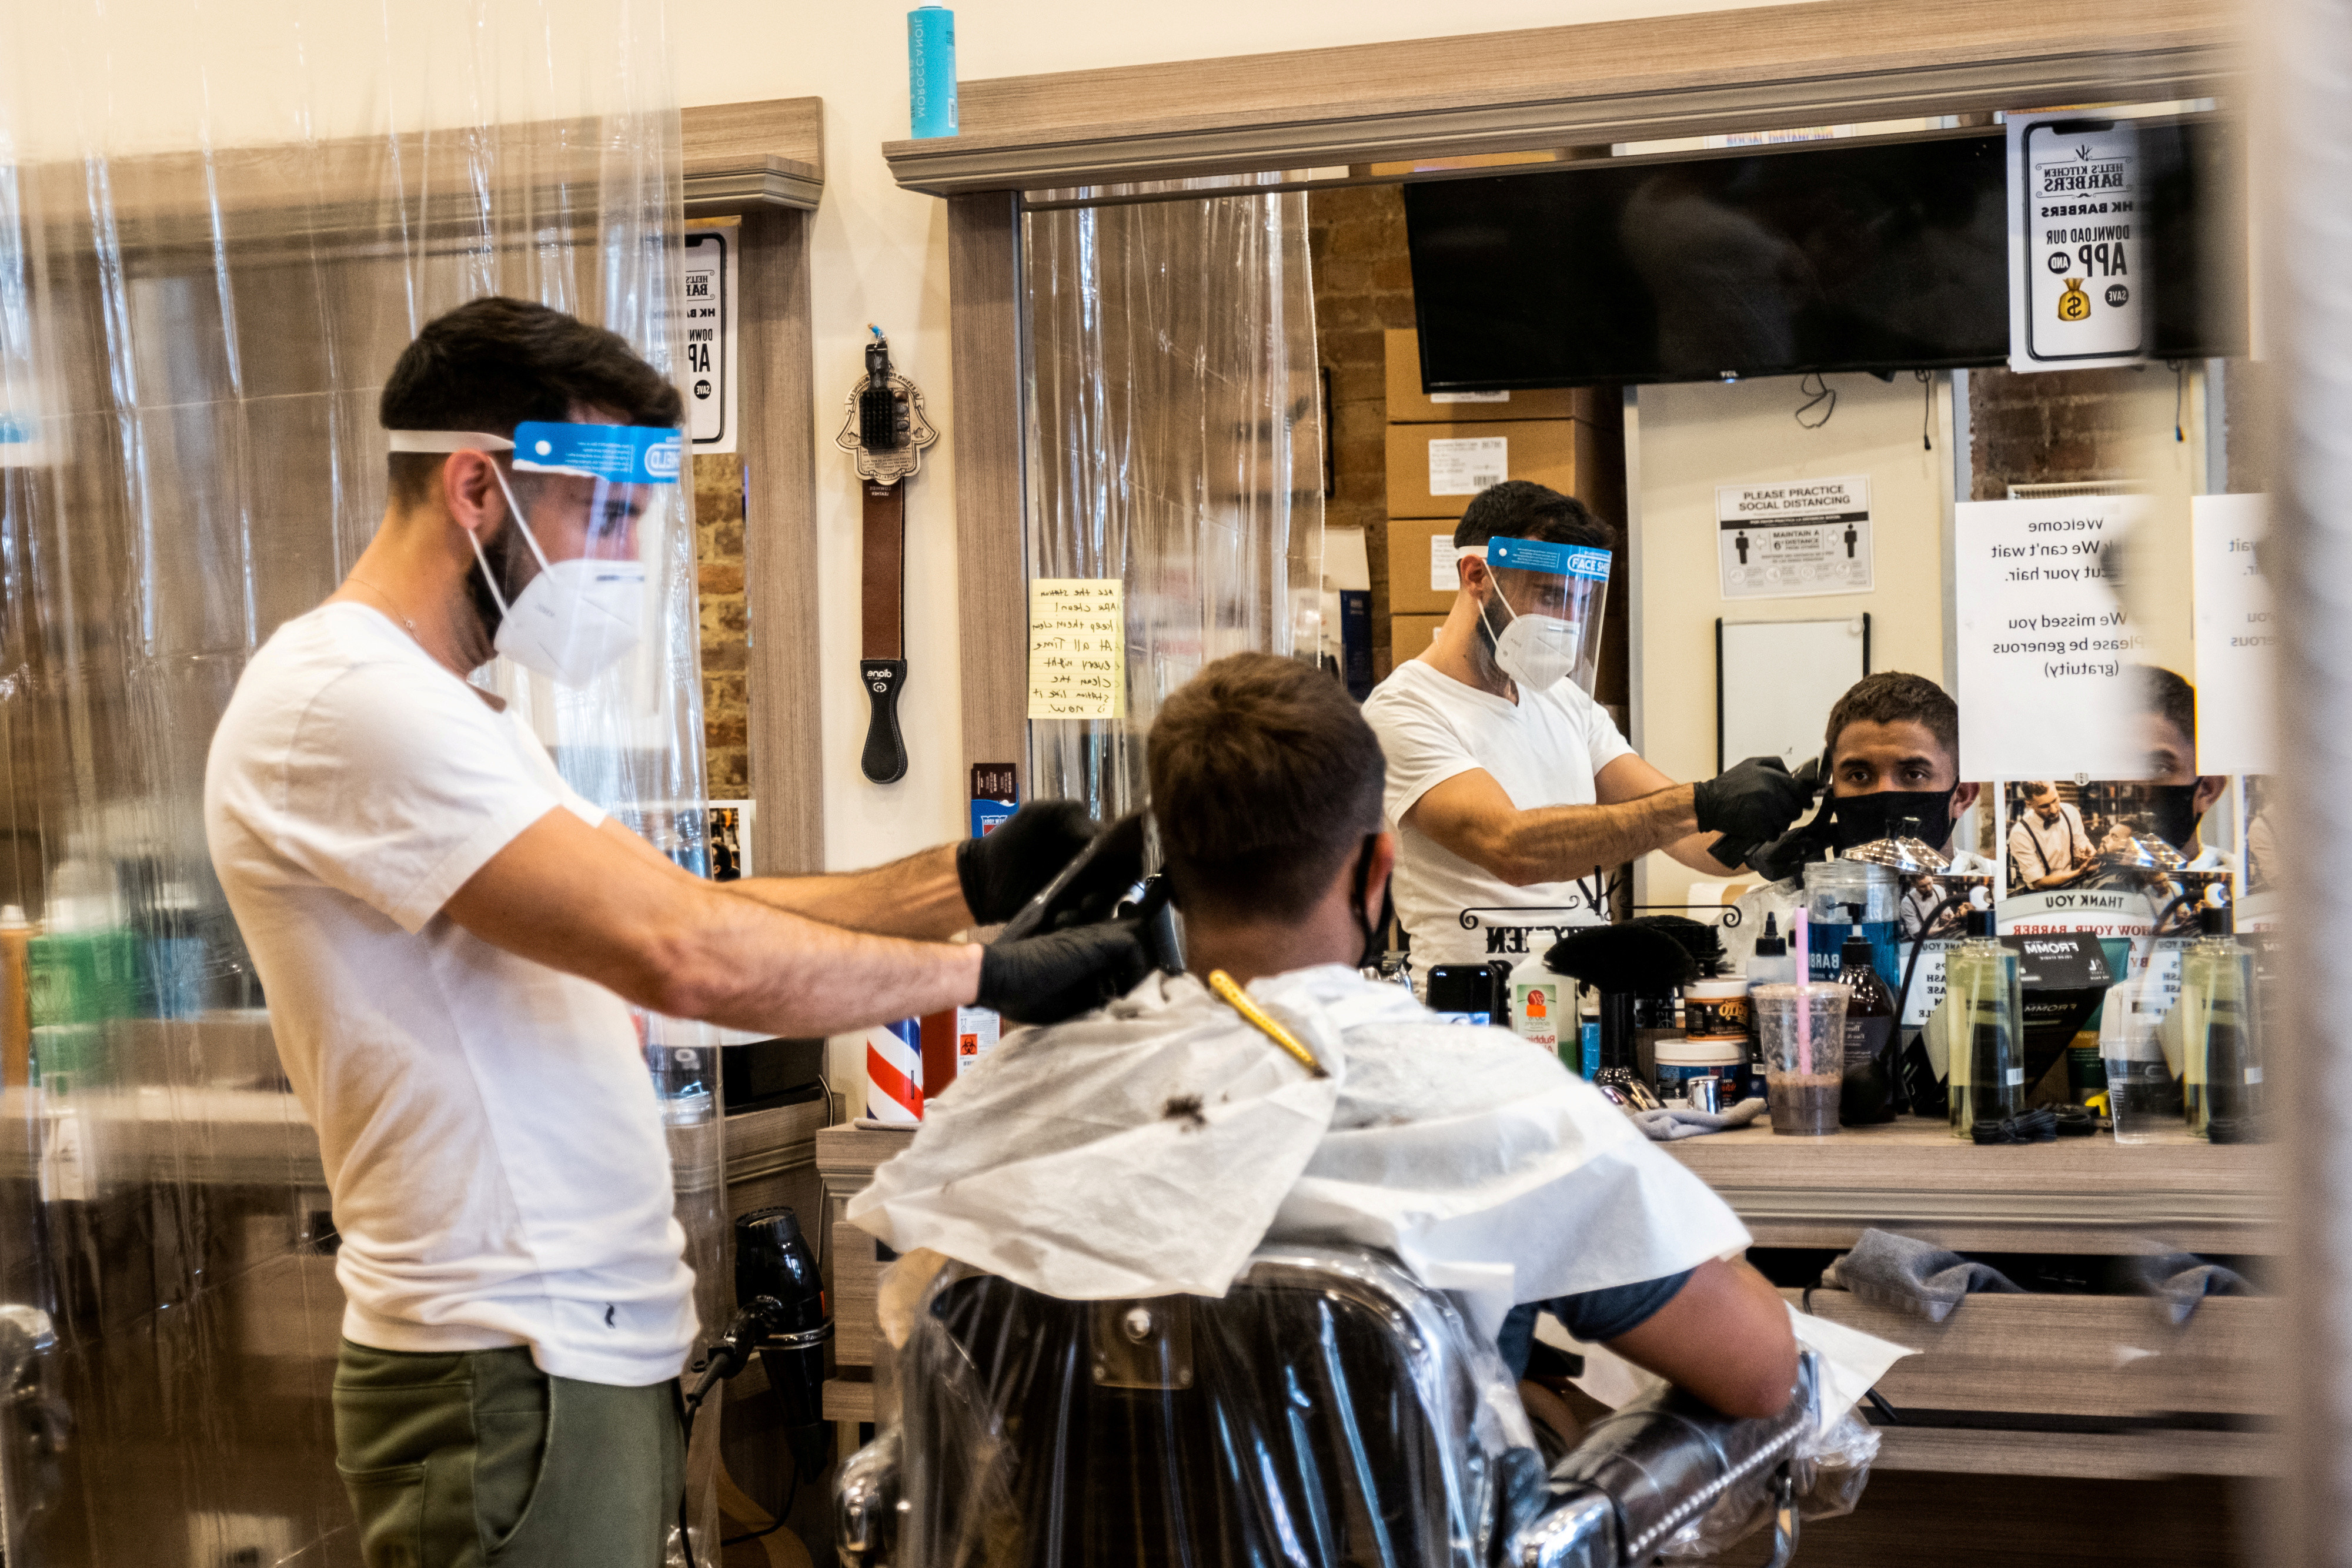 A customer wearing a face mask gets his hair cut at a barber shop after its reopening following the outbreak of the coronavirus disease (COVID-19), in New York City, New York, U.S., July 5, 2020. REUTERS/Jeenah Moon     TPX IMAGES OF THE DAY - RC2BNH9HQKQ7